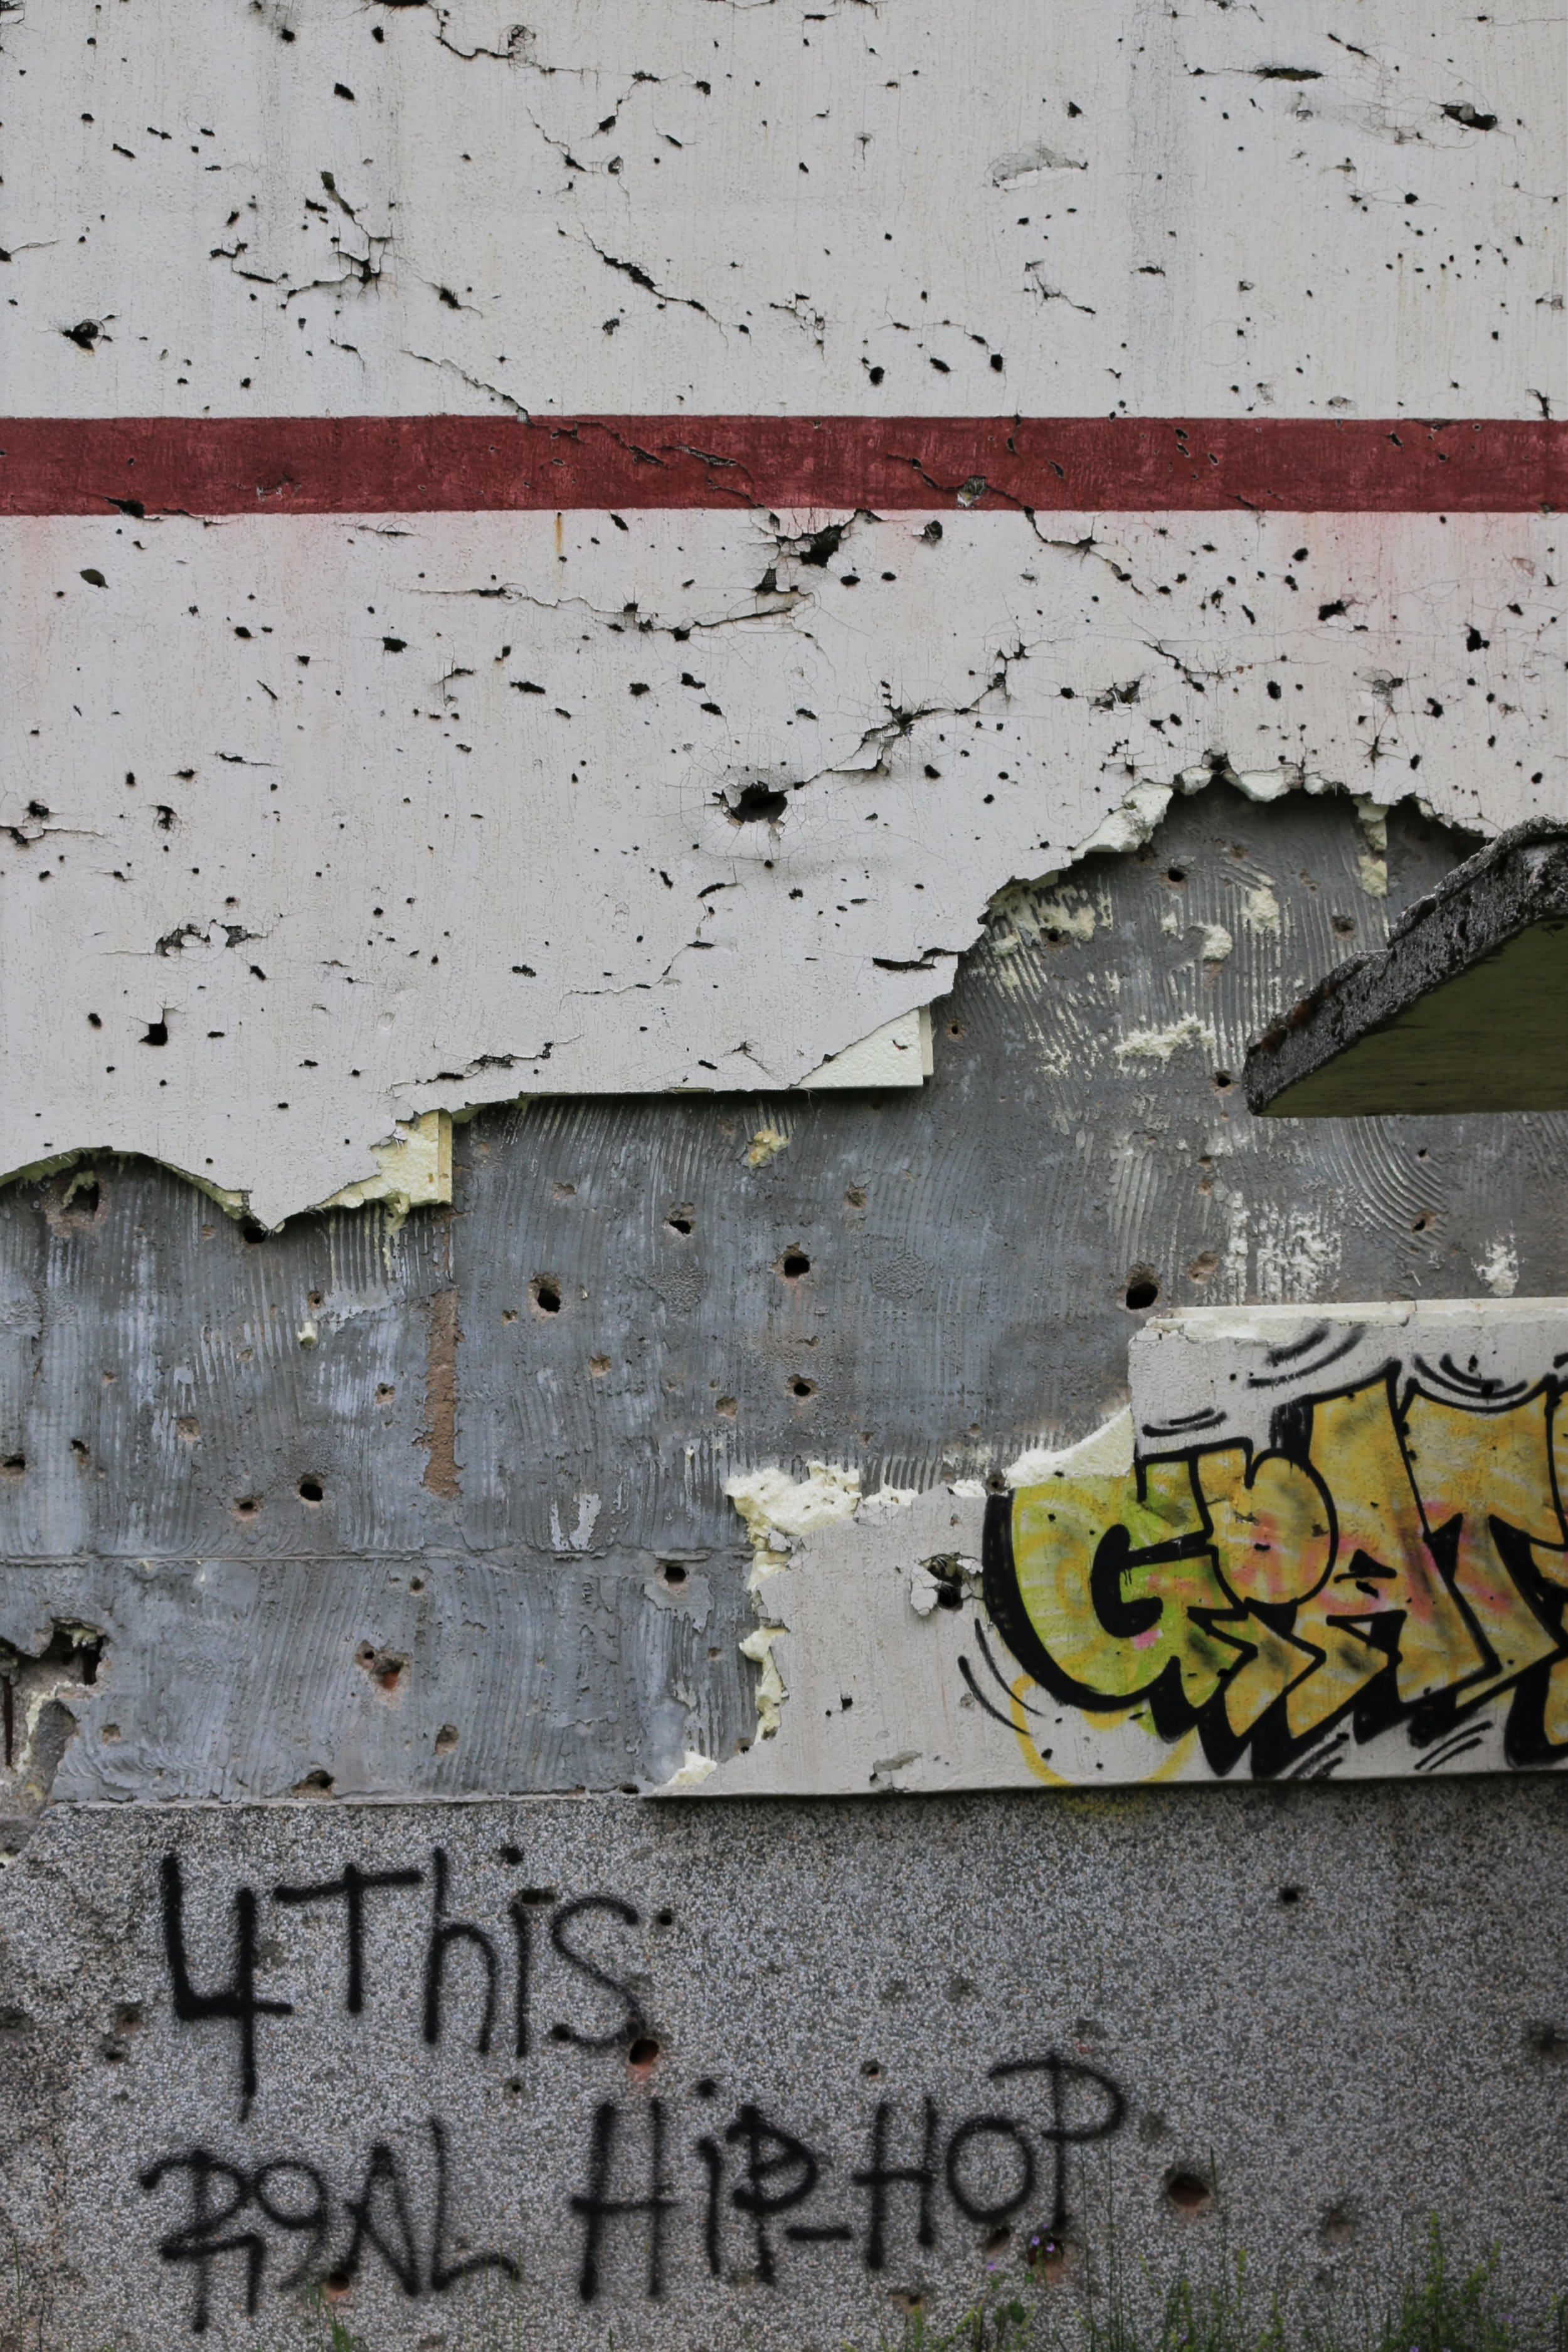 Graffiti covers a destroyed building in the hills that surround Sarajevo. The extent of the fighting seen in this area is evident by the bullet holes on the wall.